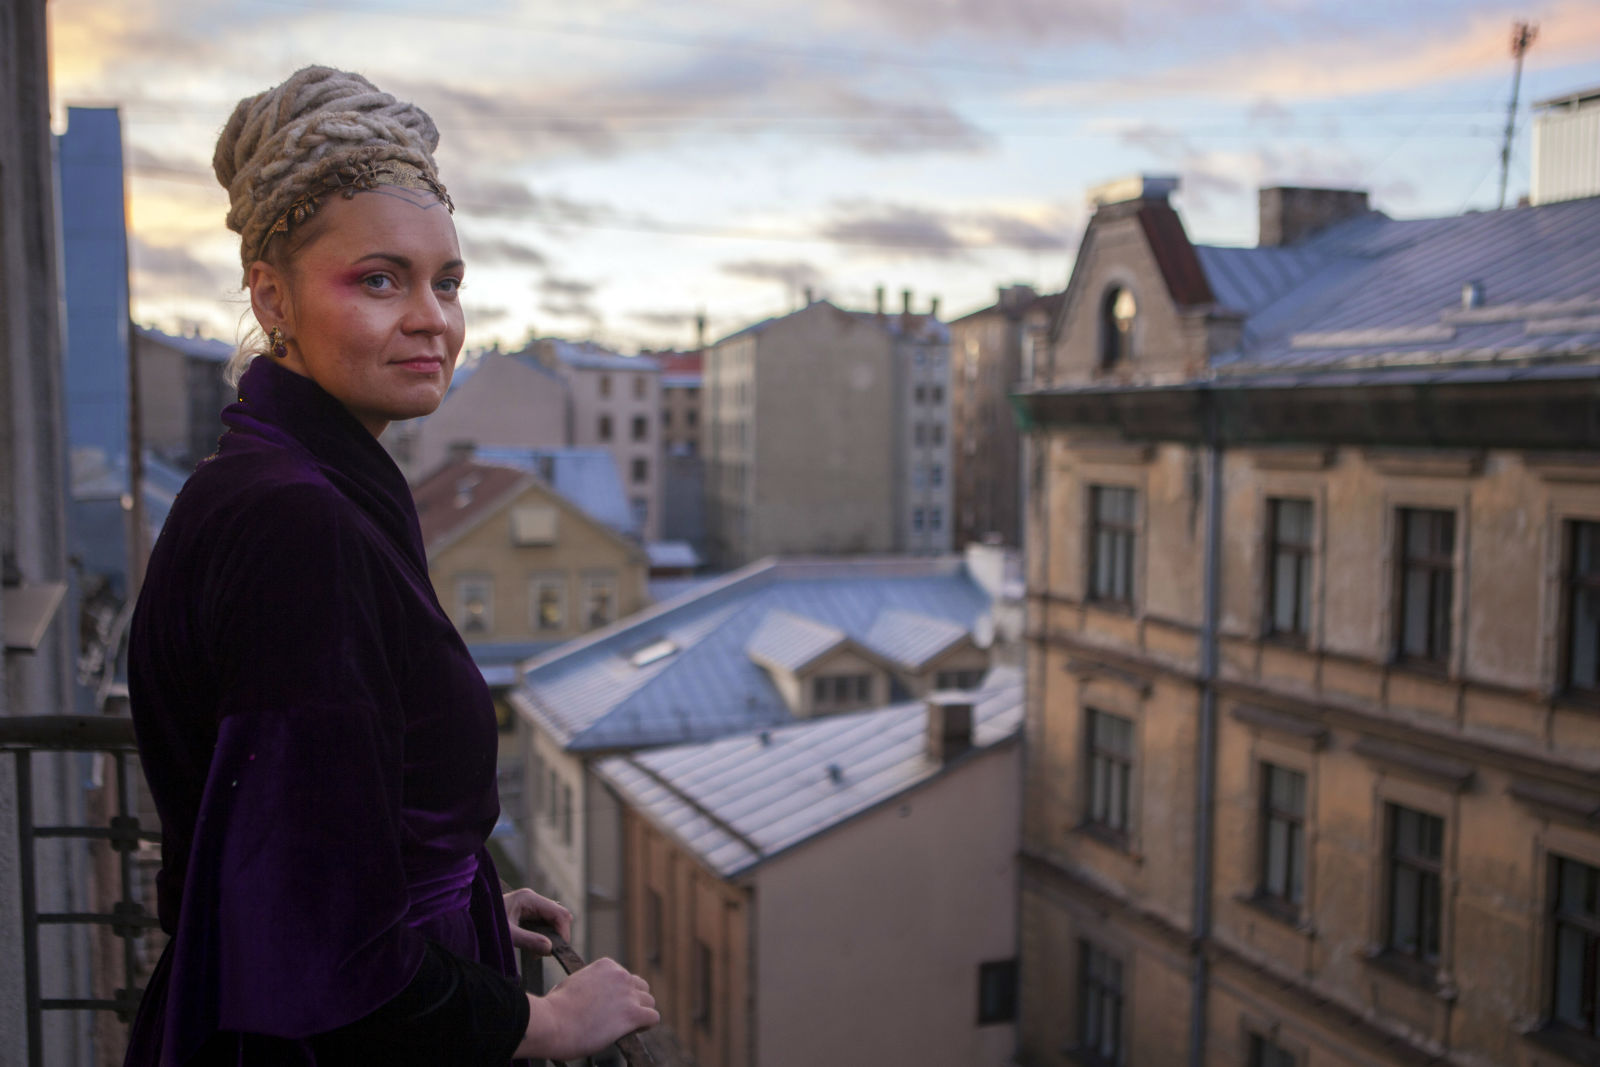 Inese Indāne, who goes by the name Inin Nini, at her friend's studio in Riga